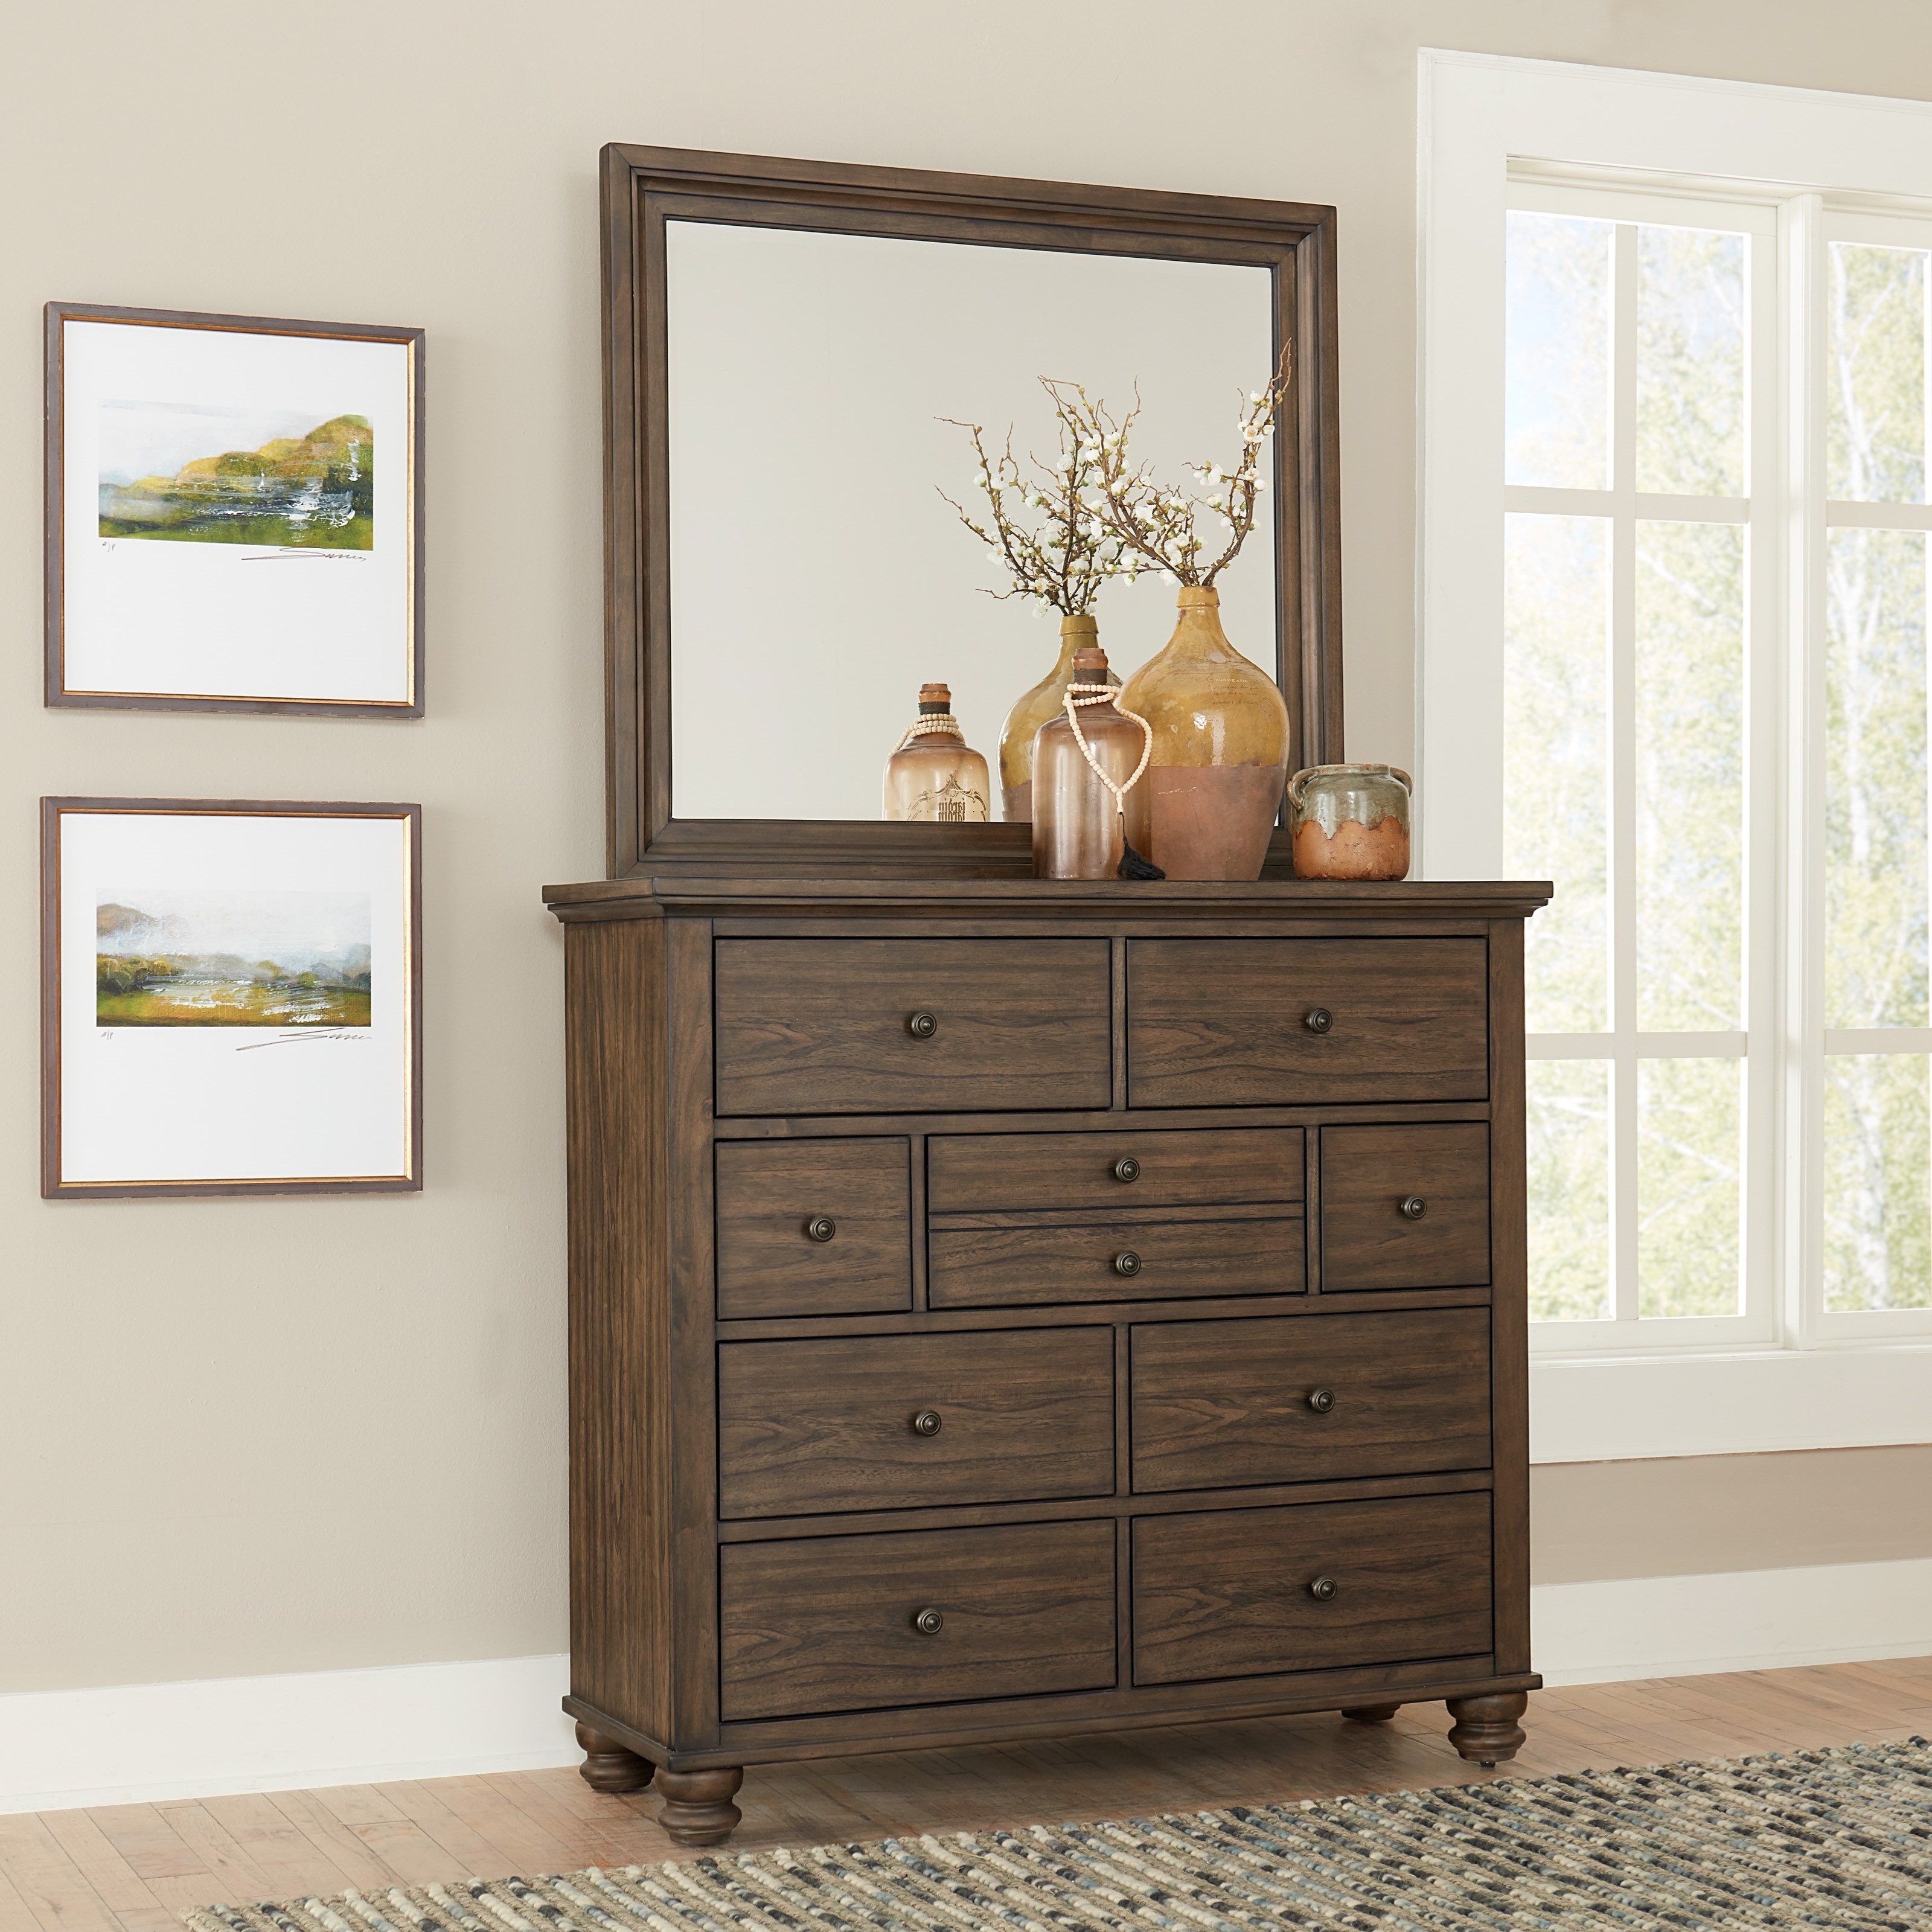 Hudson Valley Chest of Drawers and Mirror Combination by Aspenhome at Stoney Creek Furniture